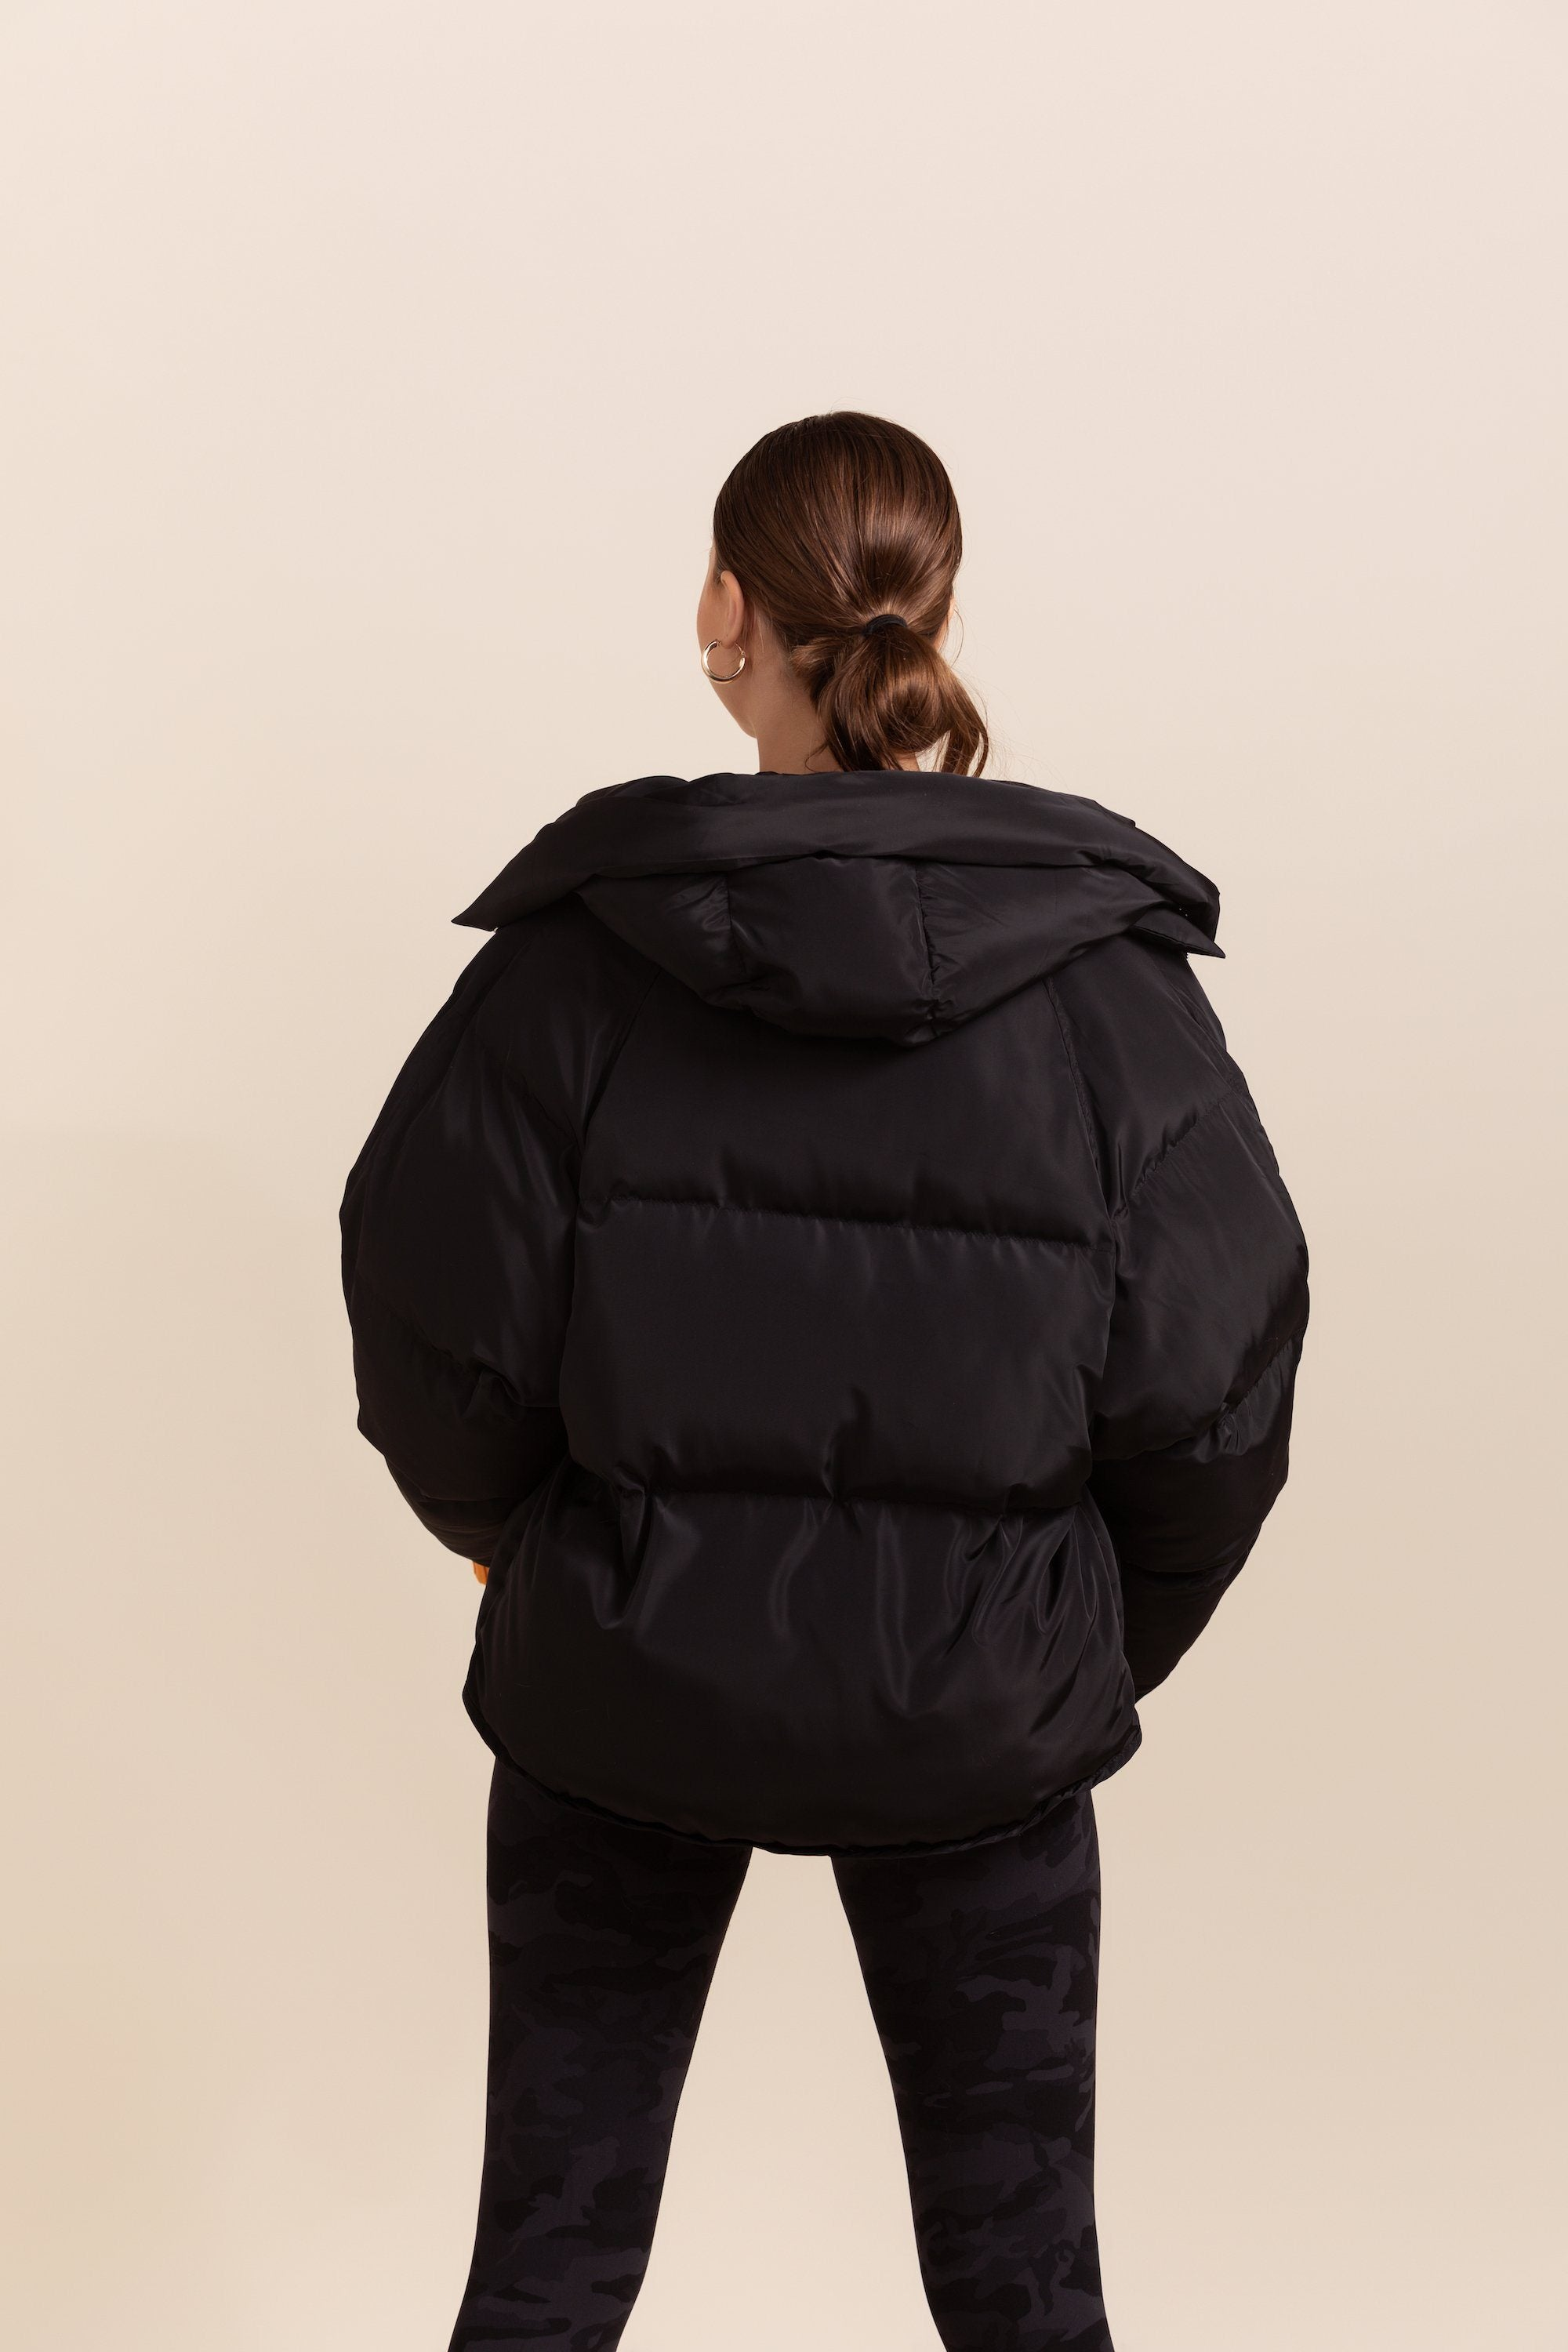 Pluto Puffer Jacket - Black *IN STOCK